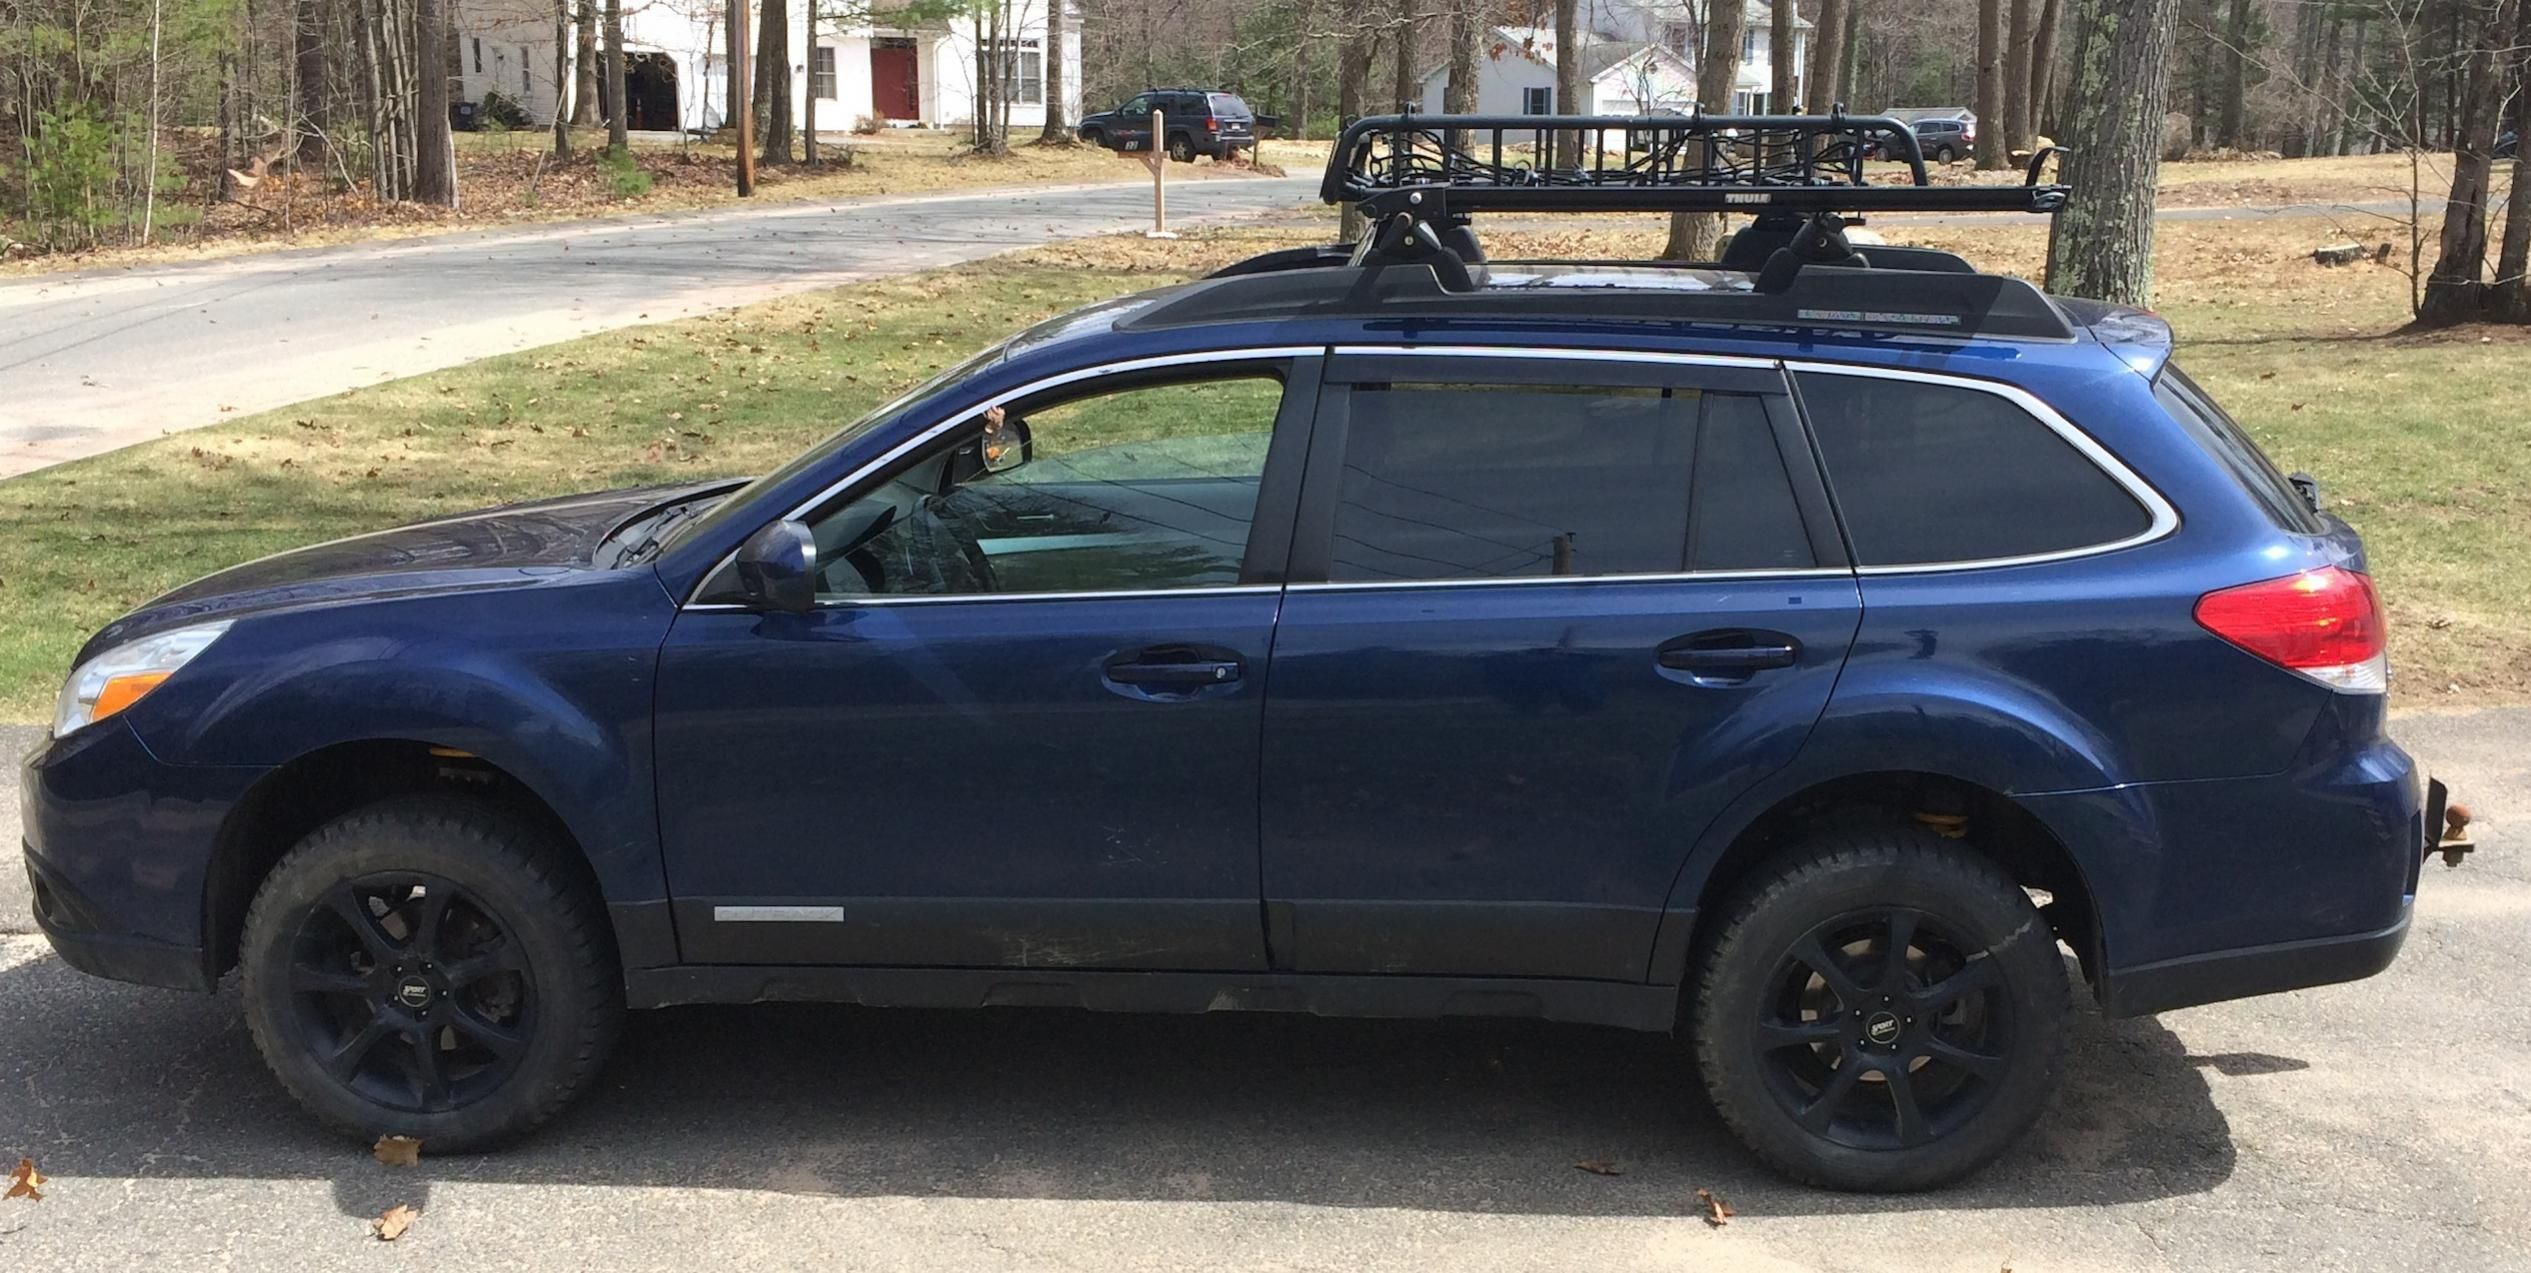 2013 Subaru Outback Lifted 100 Images 4th Gen Lift